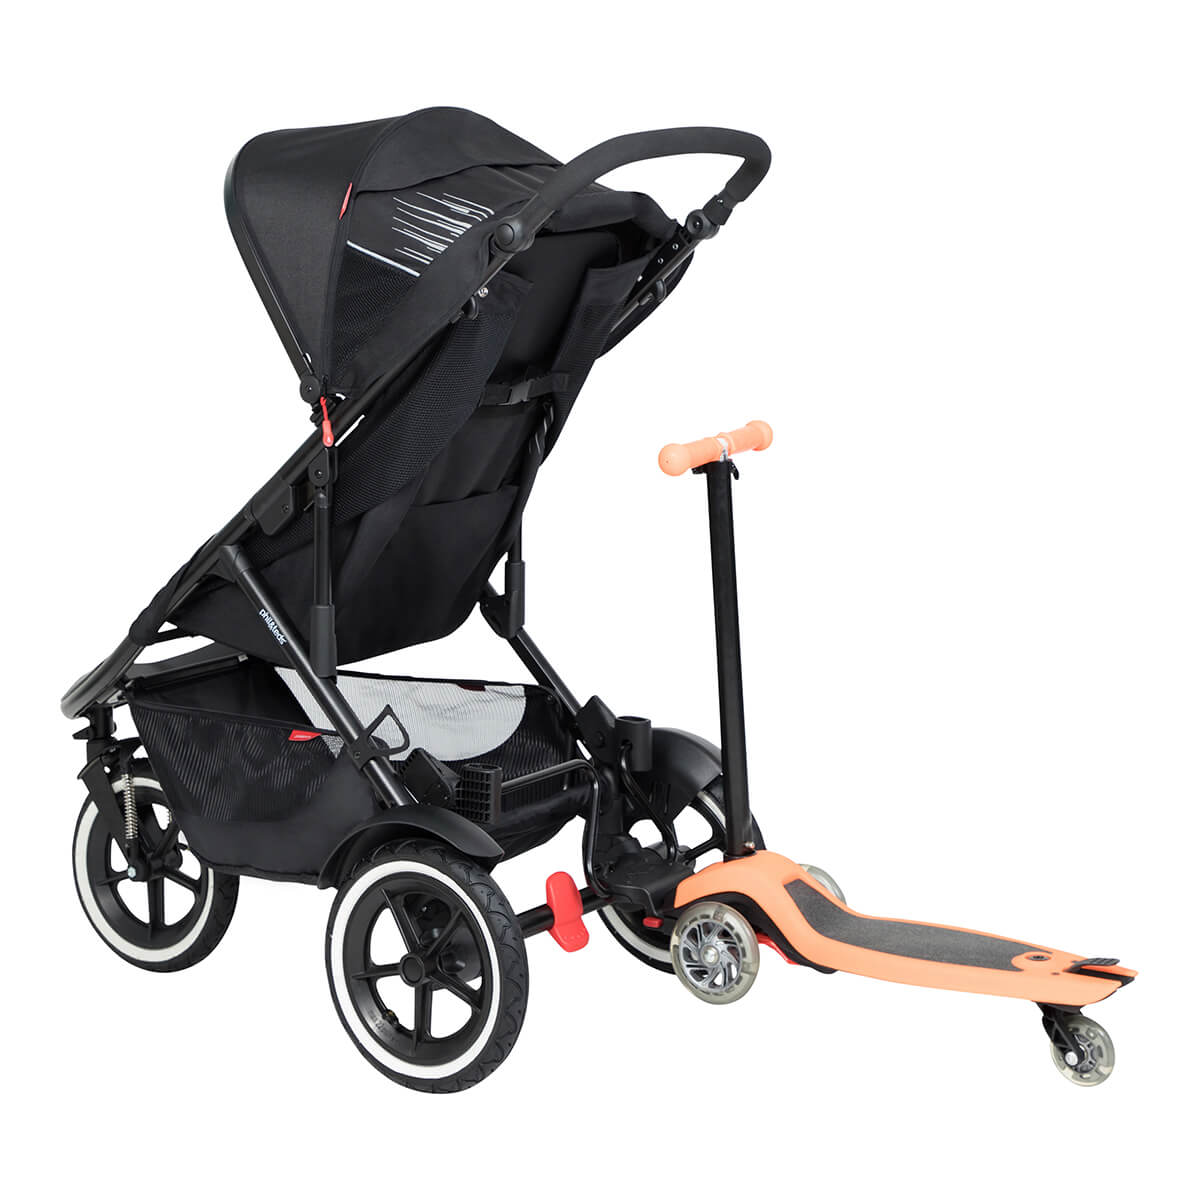 https://cdn.accentuate.io/4546157248617/19119322824809/philteds-sport-buggy-with-freerider-stroller-board-in-rear-v1626484907672.jpg?1200x1200